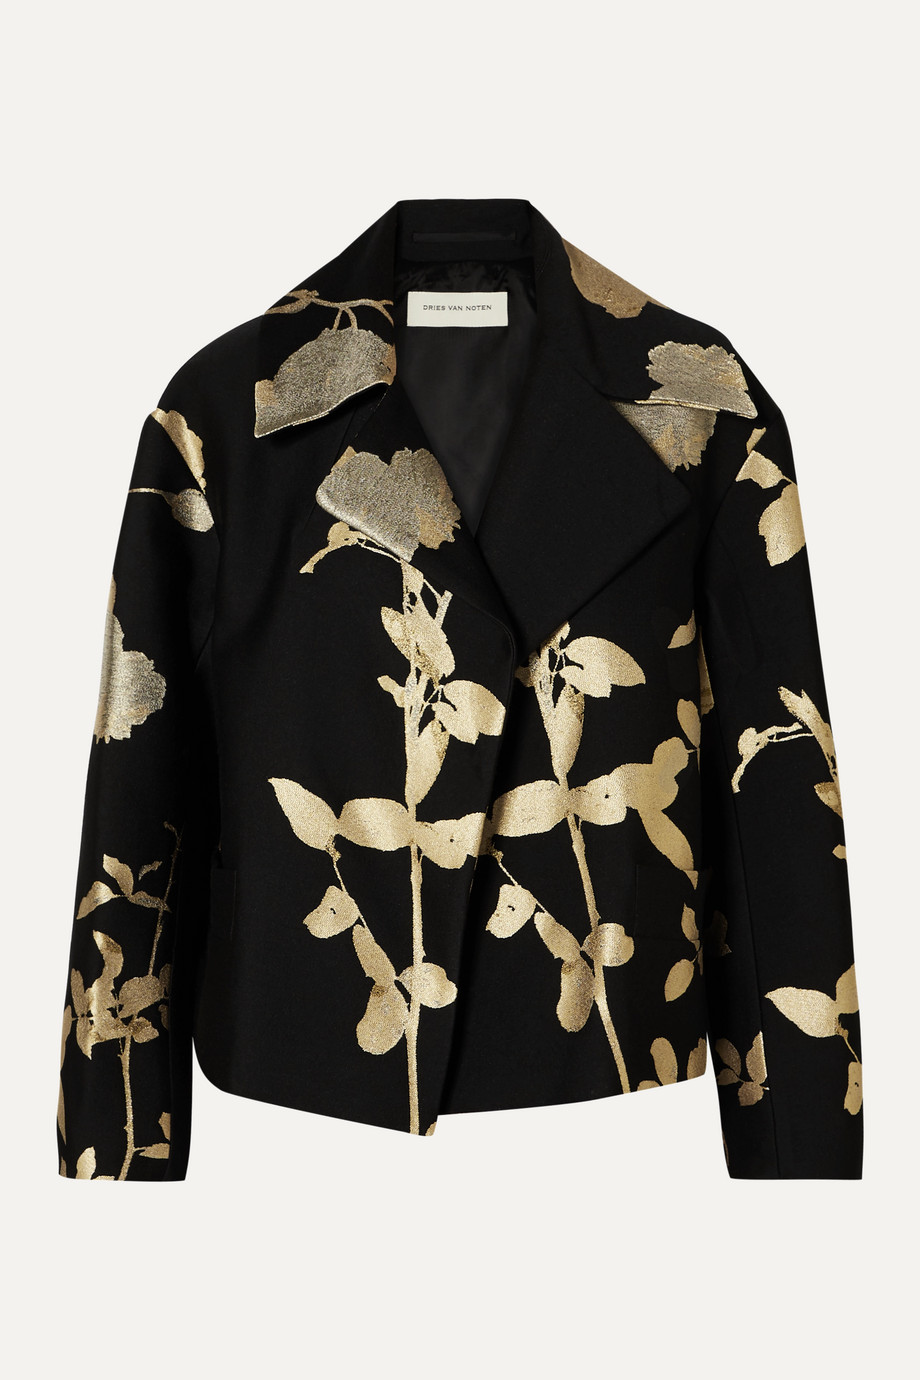 Dries Van Noten black and gold floral jacquard jacket